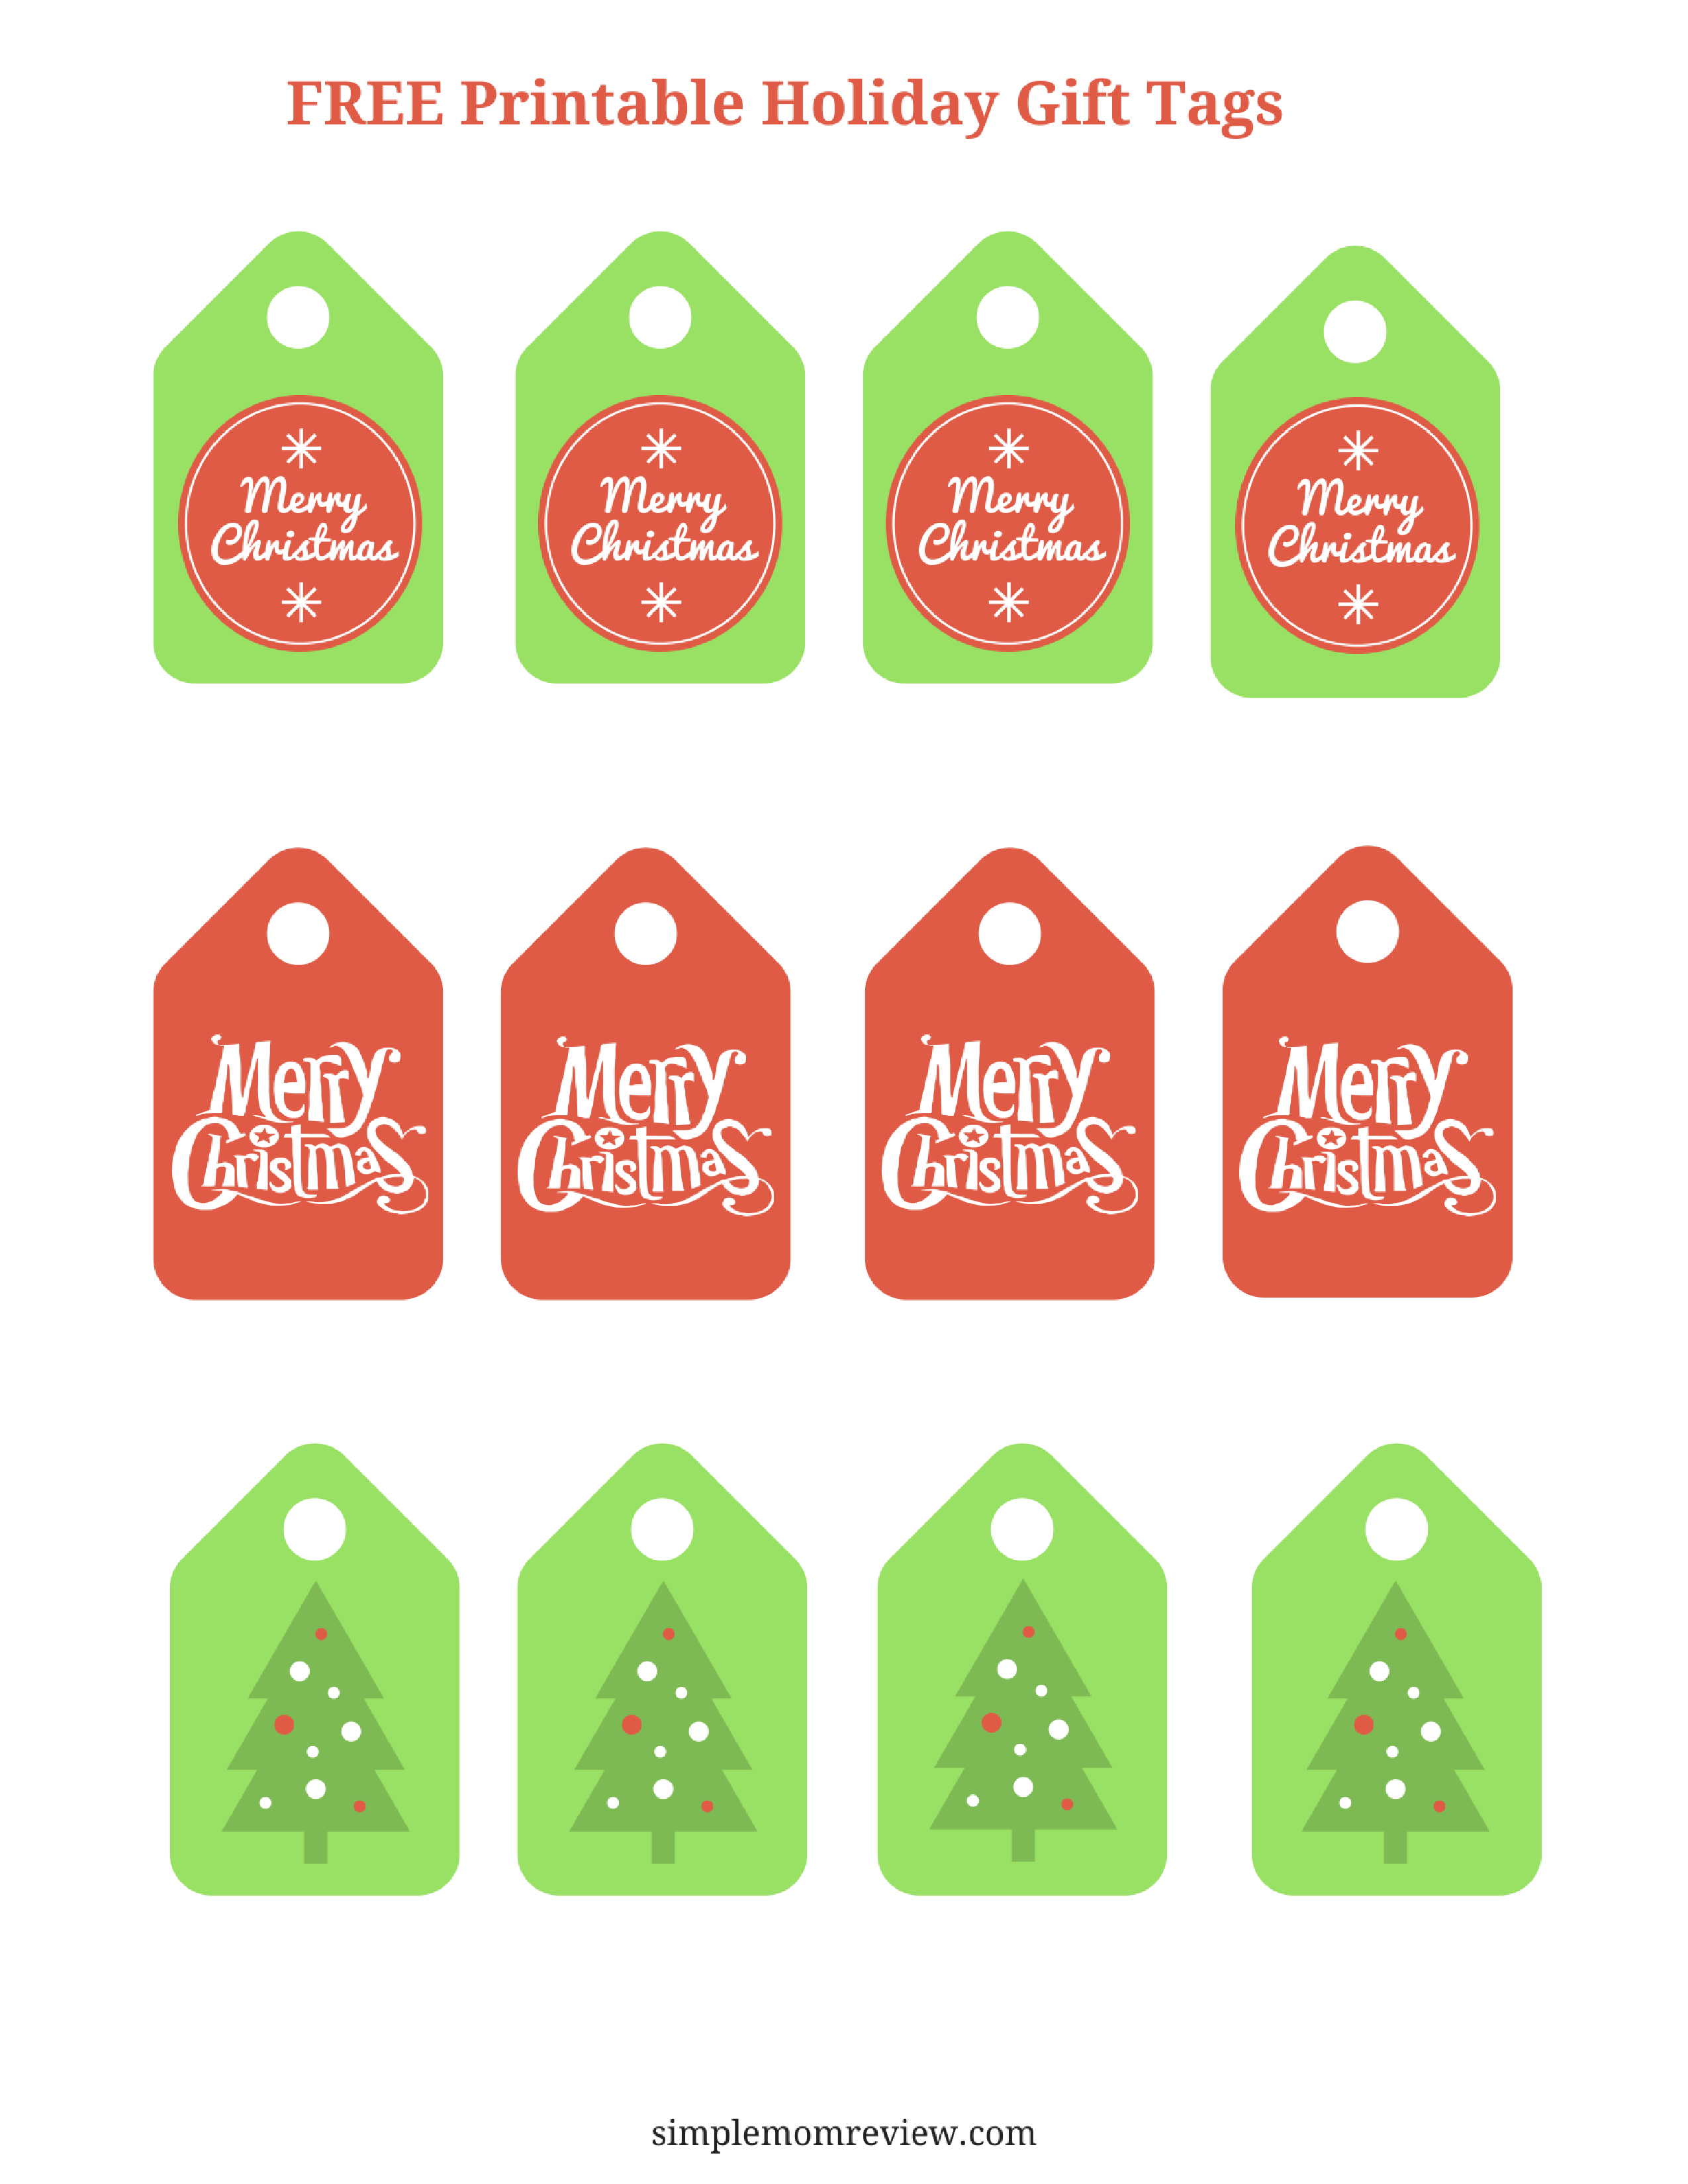 graphic about Merry Christmas Tags Free Printable called Merry Xmas Present Tags: Free of charge Printable - Very simple Mother Assessment